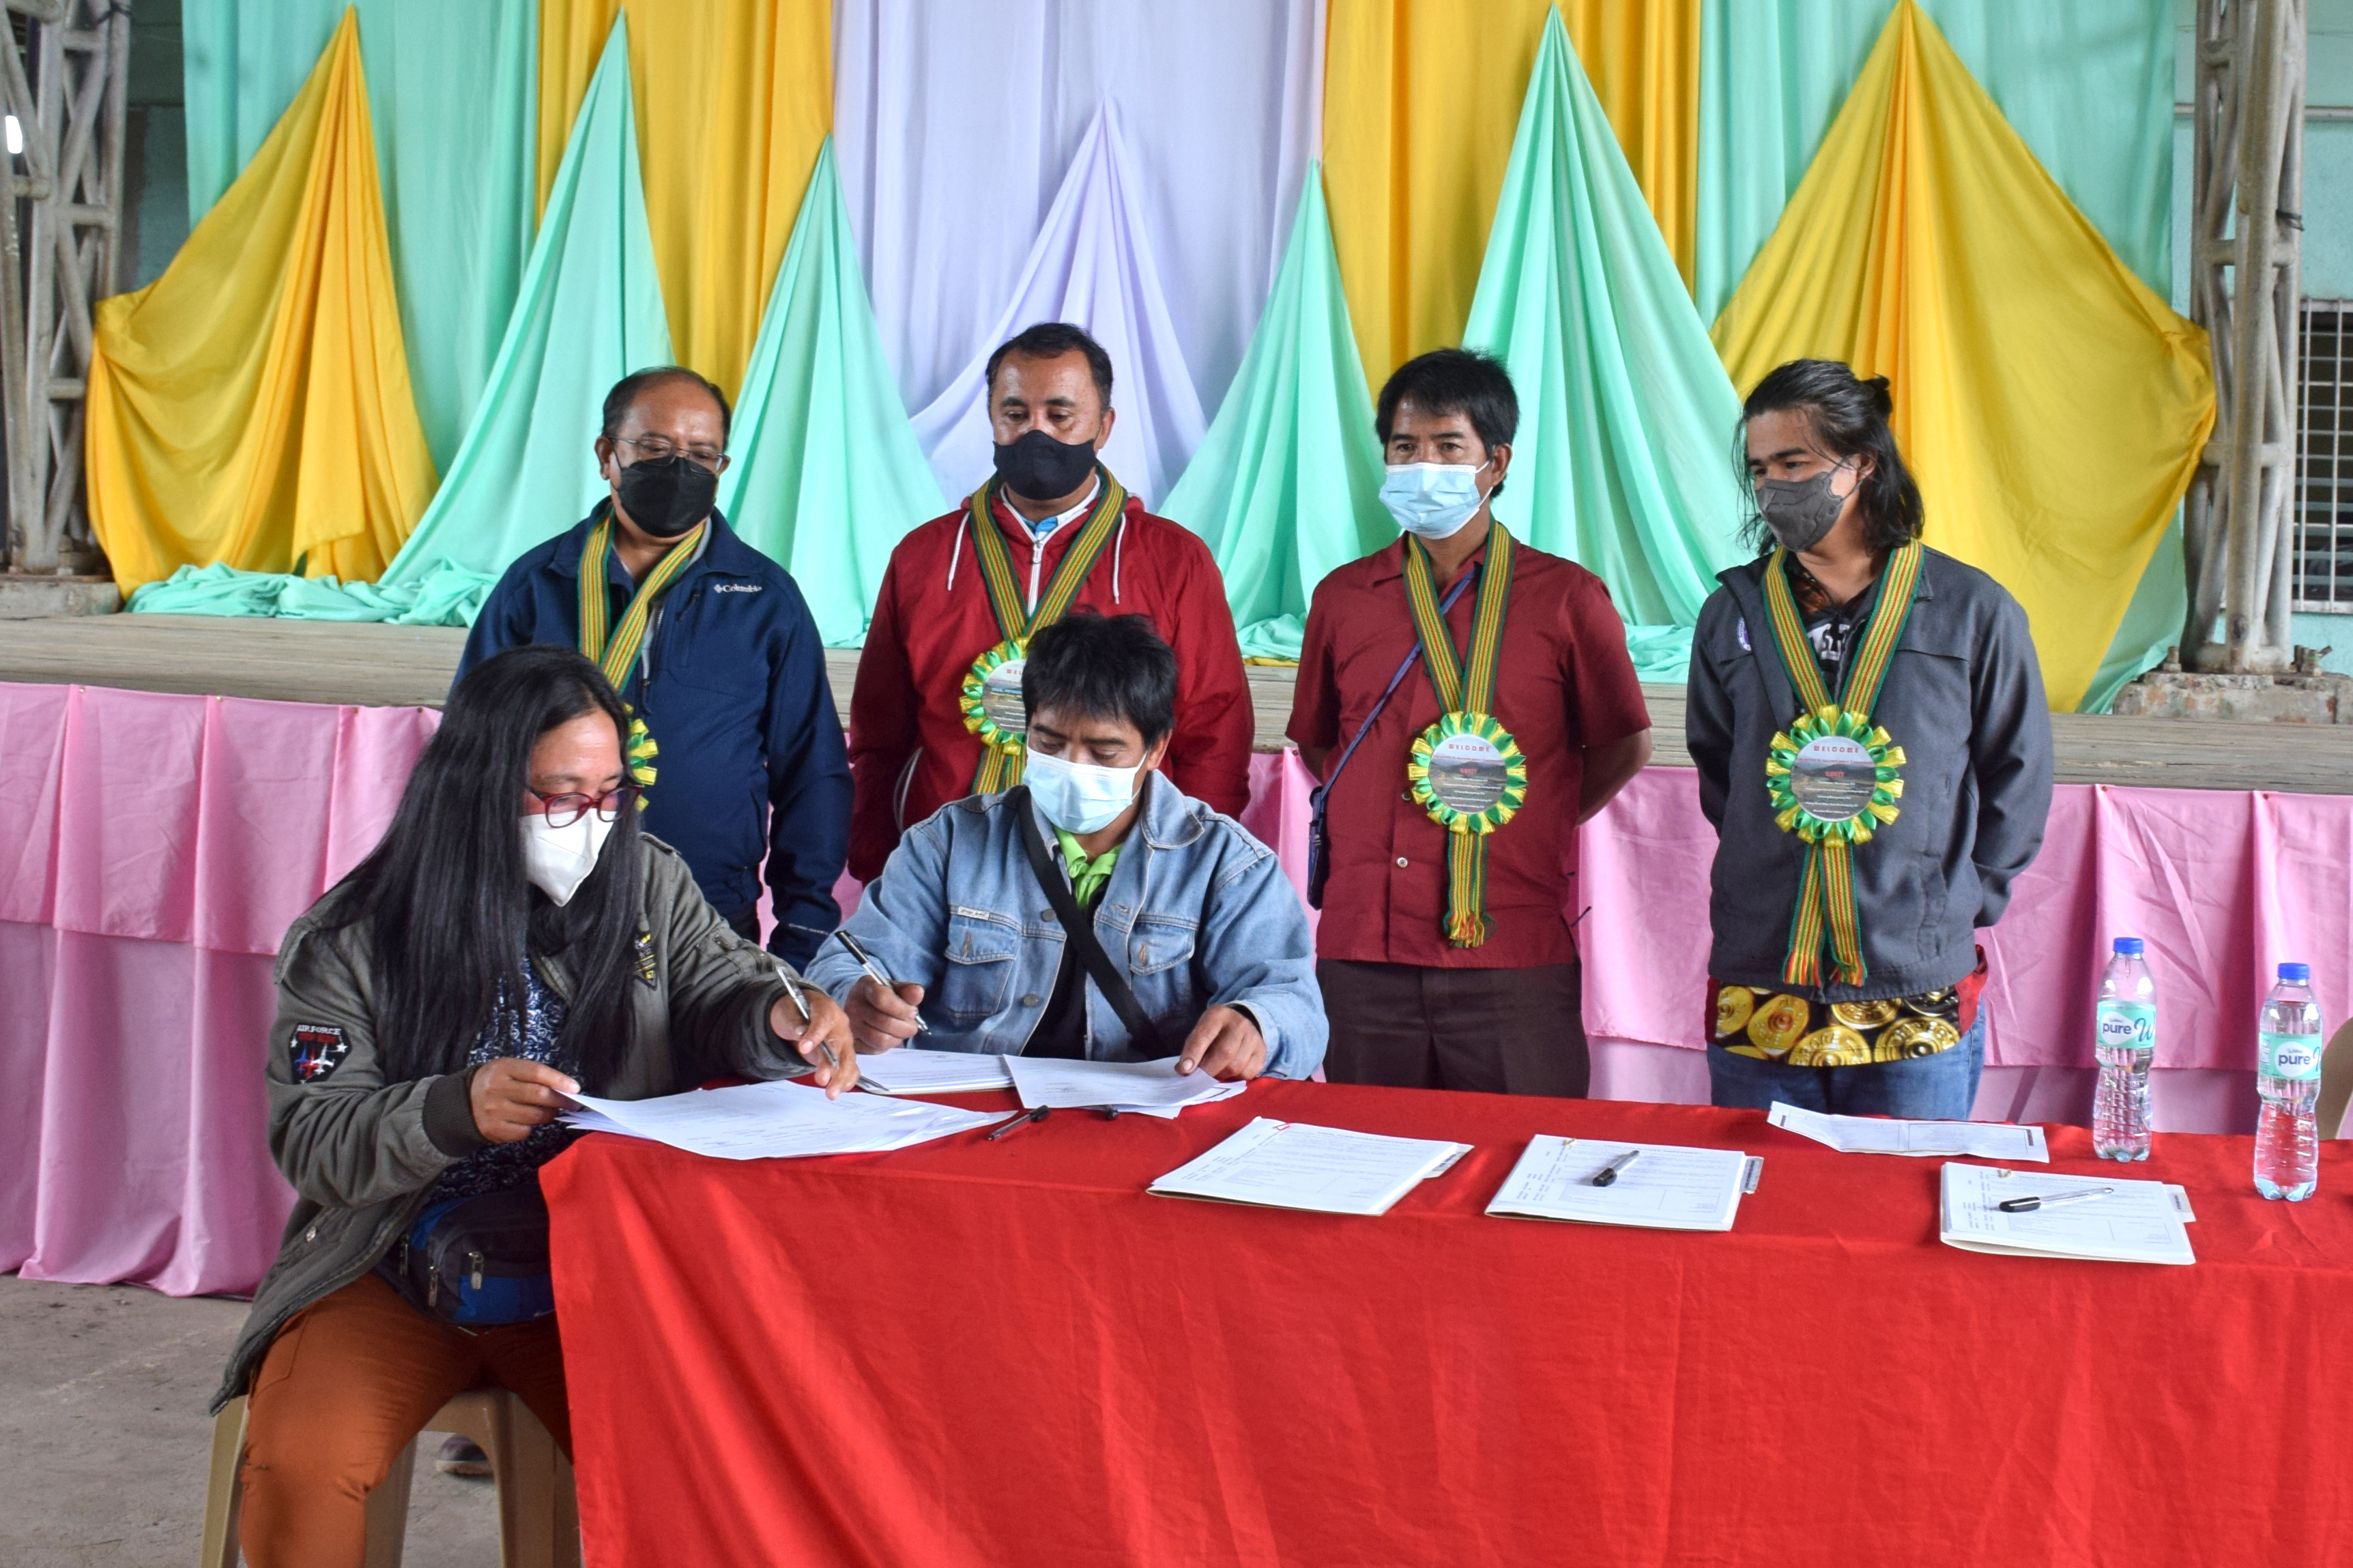 Irrigators' Association leaders in Ifugao acceptance papers of irrigation systems turned over to them as NIA and local officials serve as witnesses.